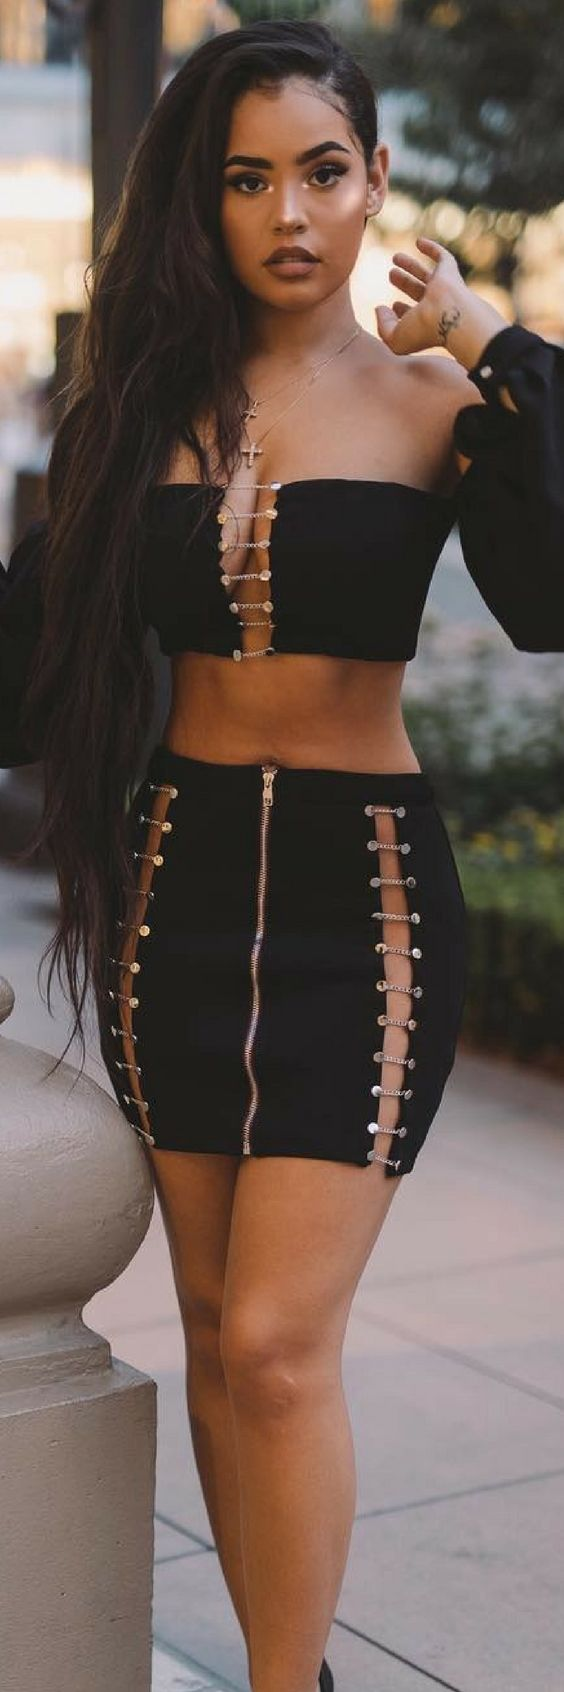 7 Daring Outfit Ideas That Will Make 2018 Outstanding https://ecstasymodels.blog/2017/12/19/7-daring-outfit-ideas-2018-outstanding/